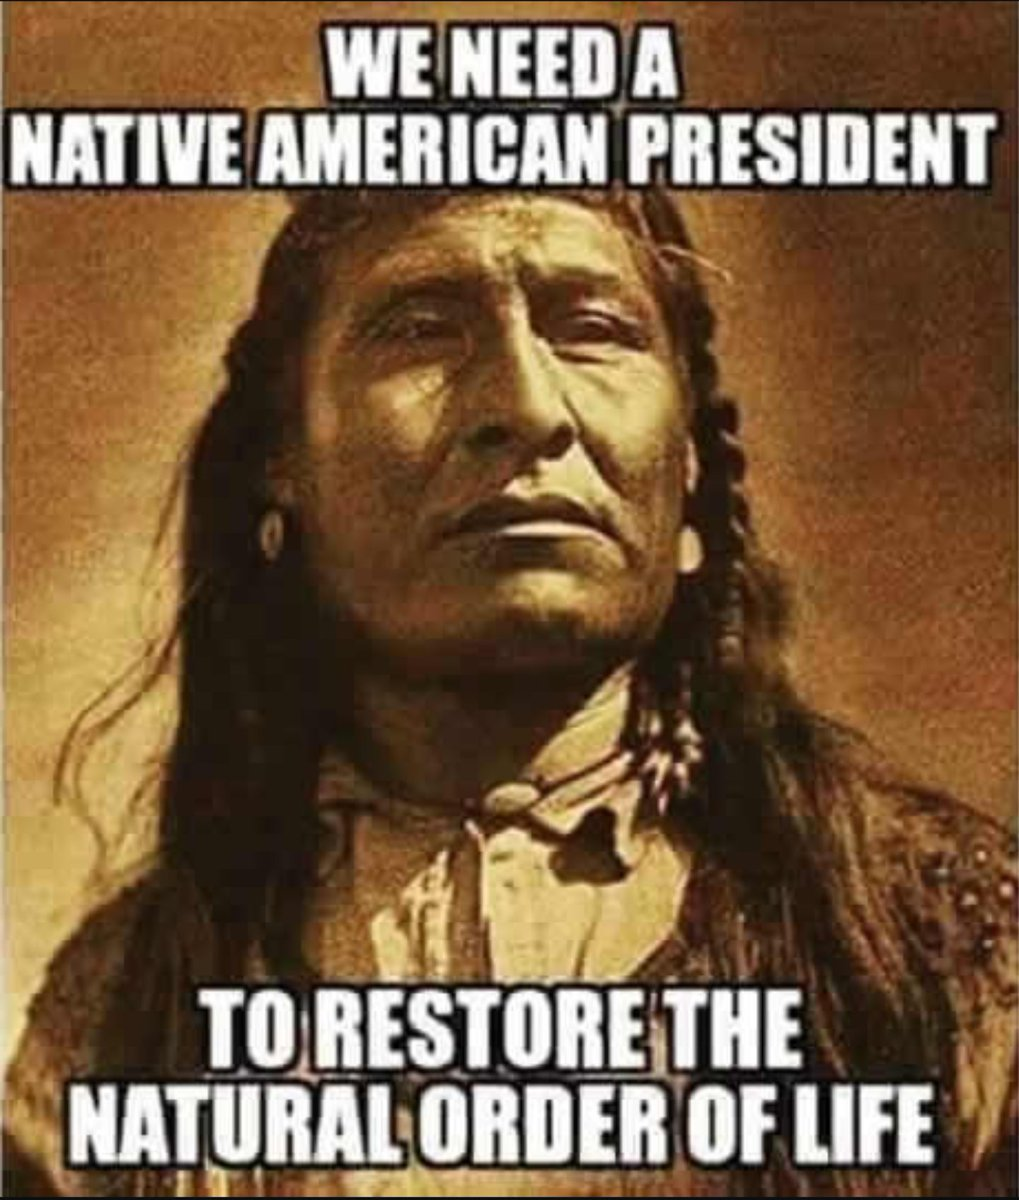 Would you vote a native president?